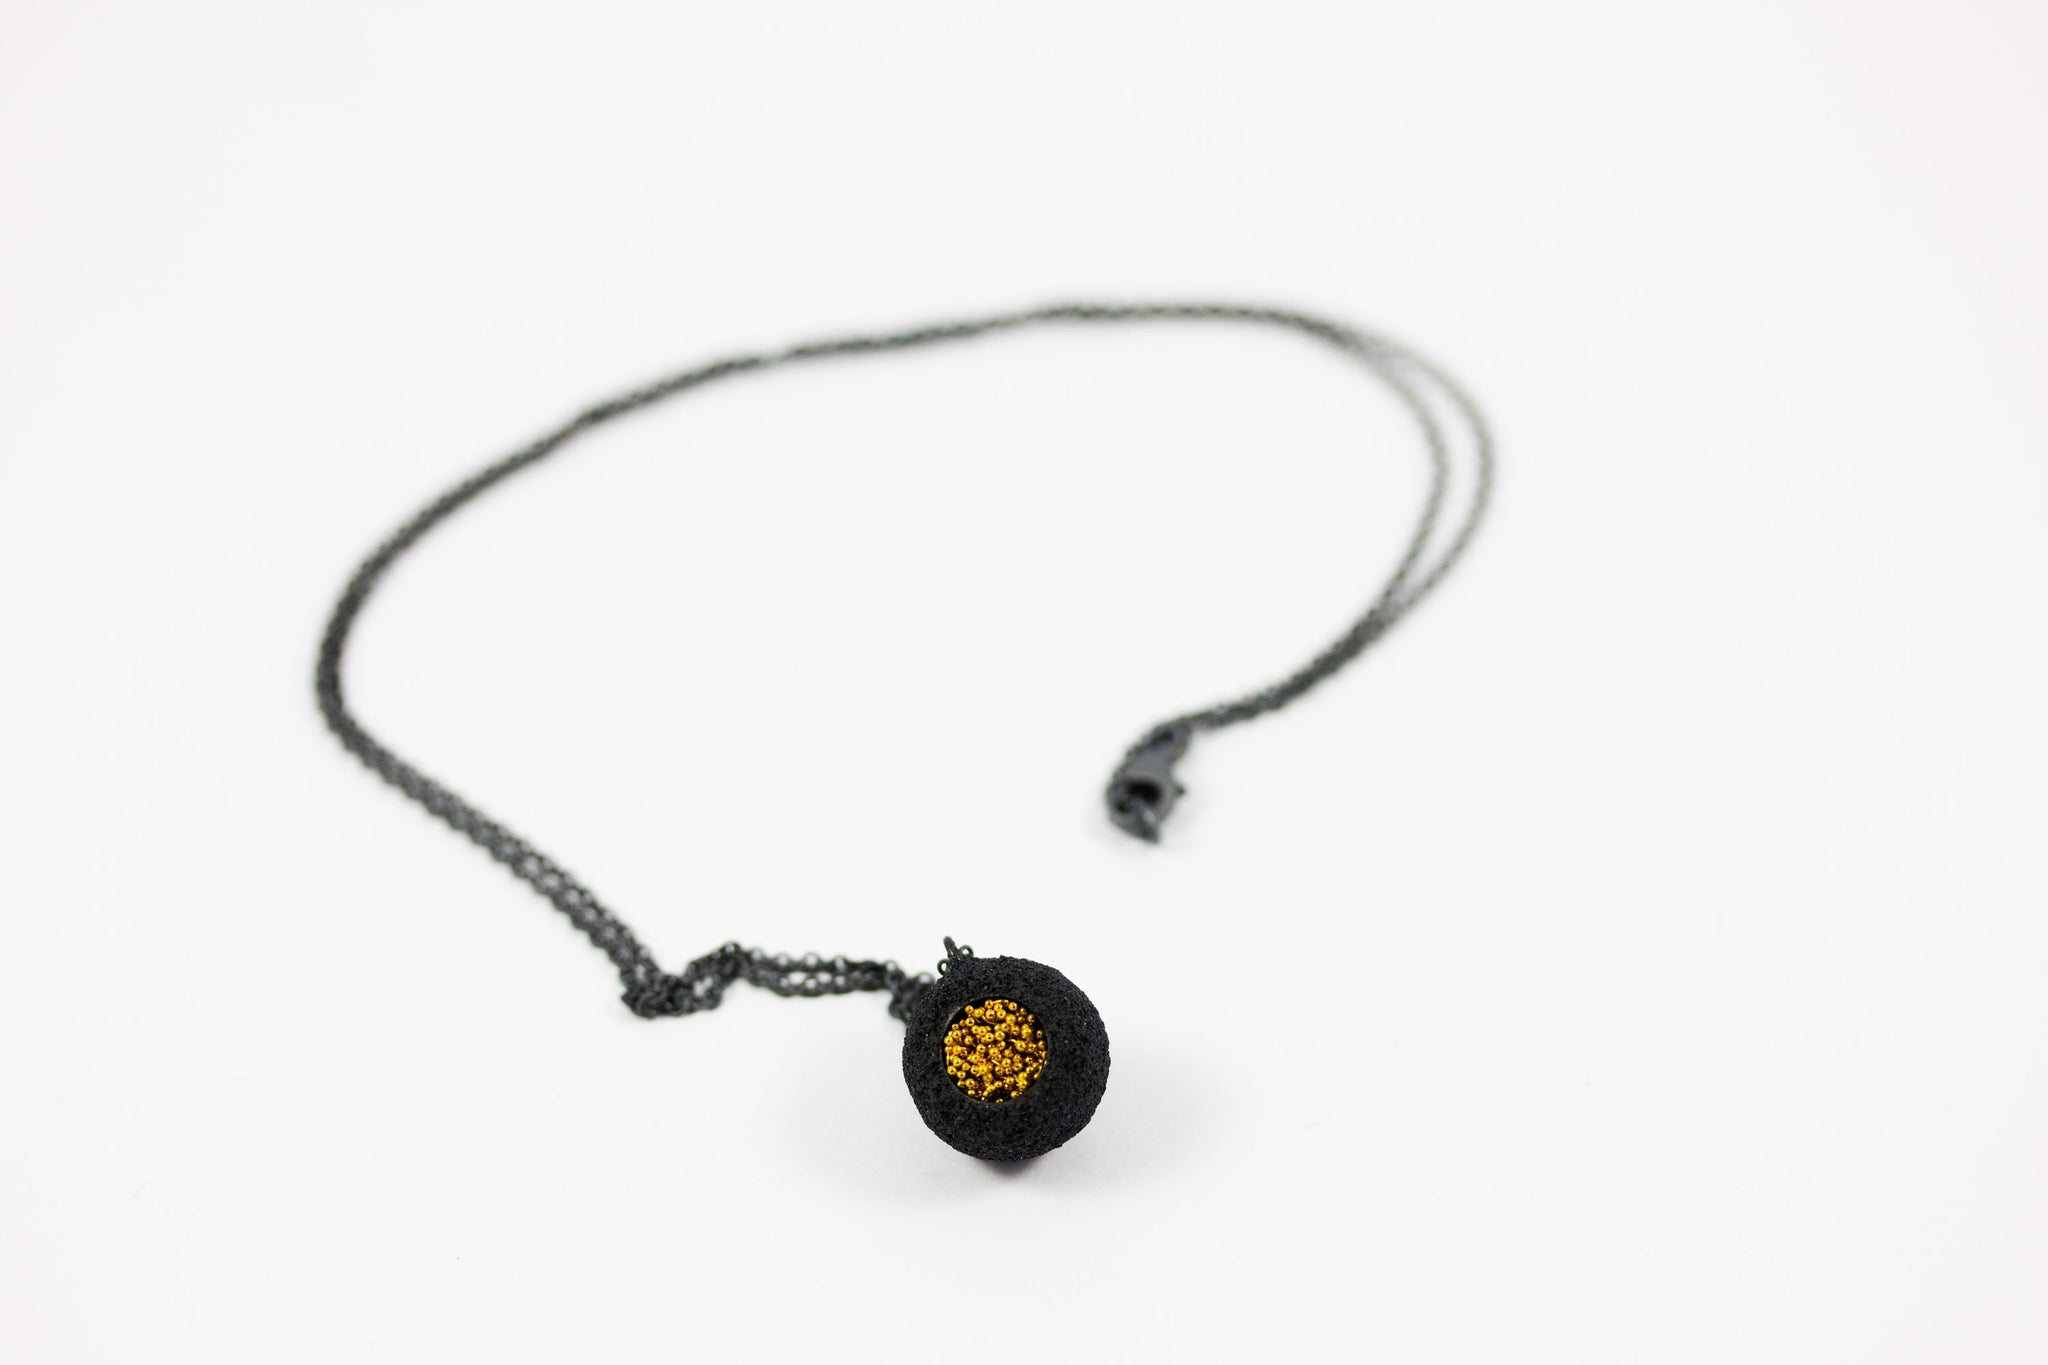 Oxidized Silver and Keum-Boo Gold Pendant